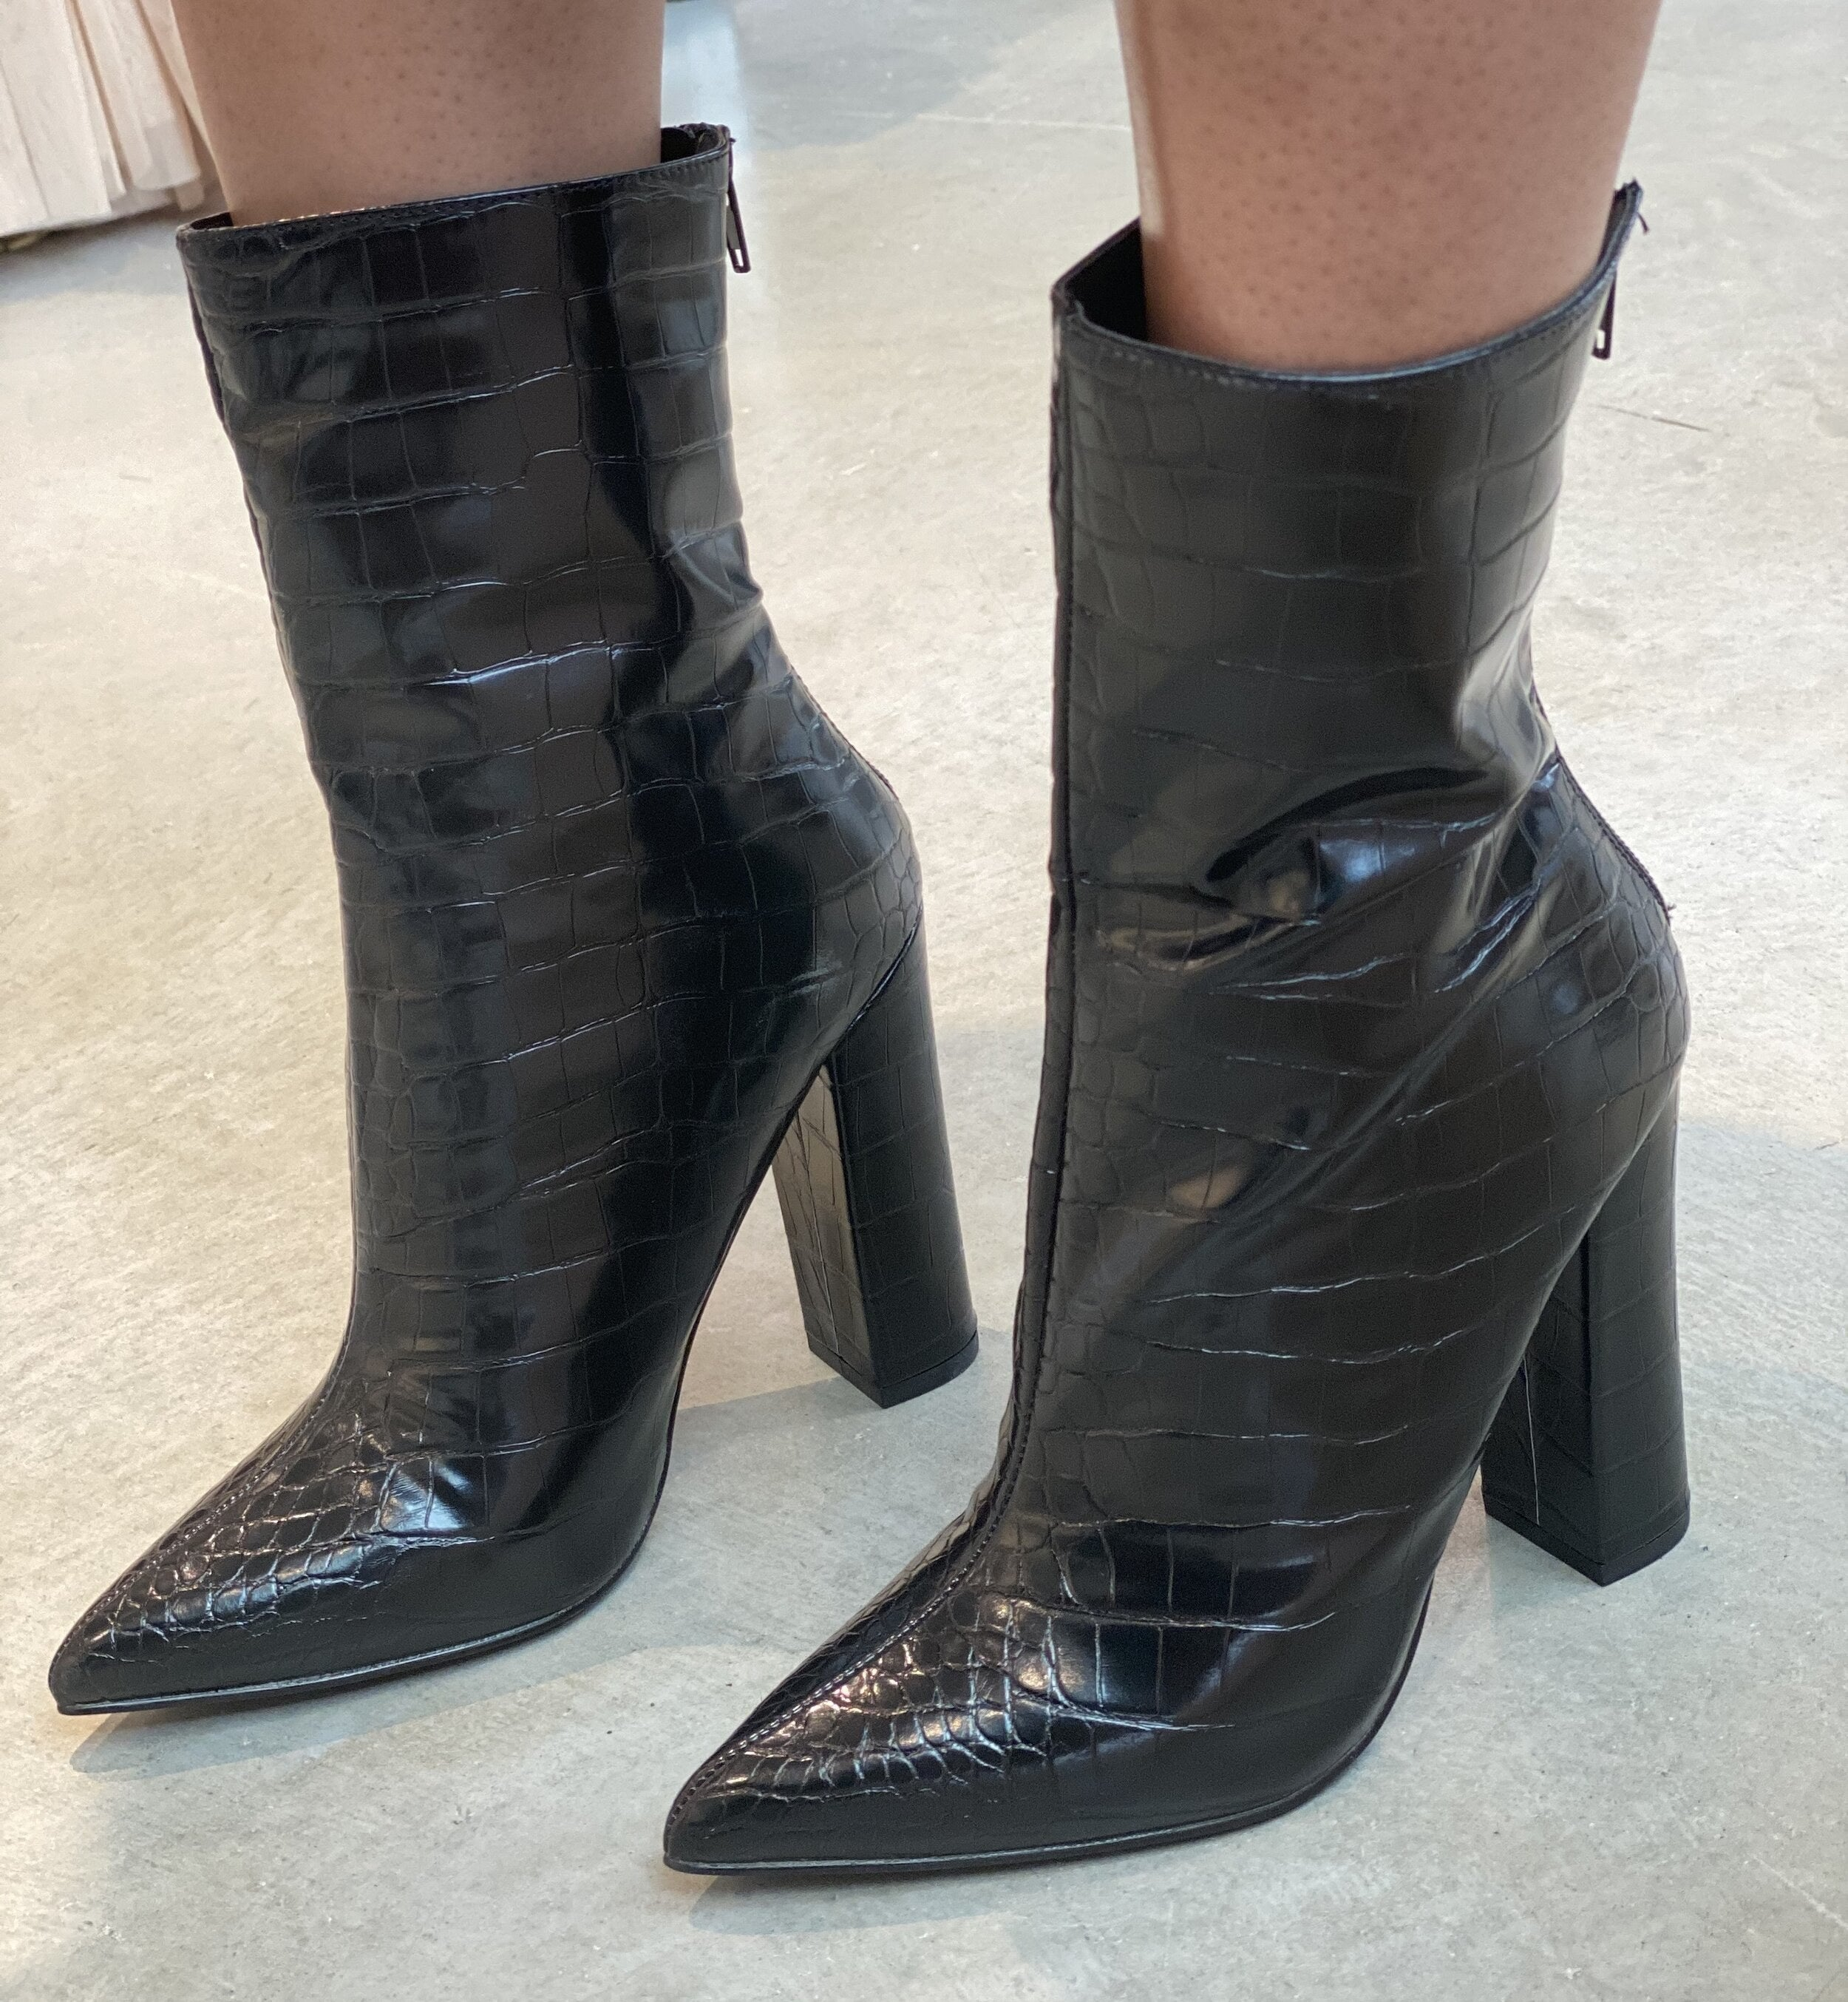 The black pointed croc-style booties